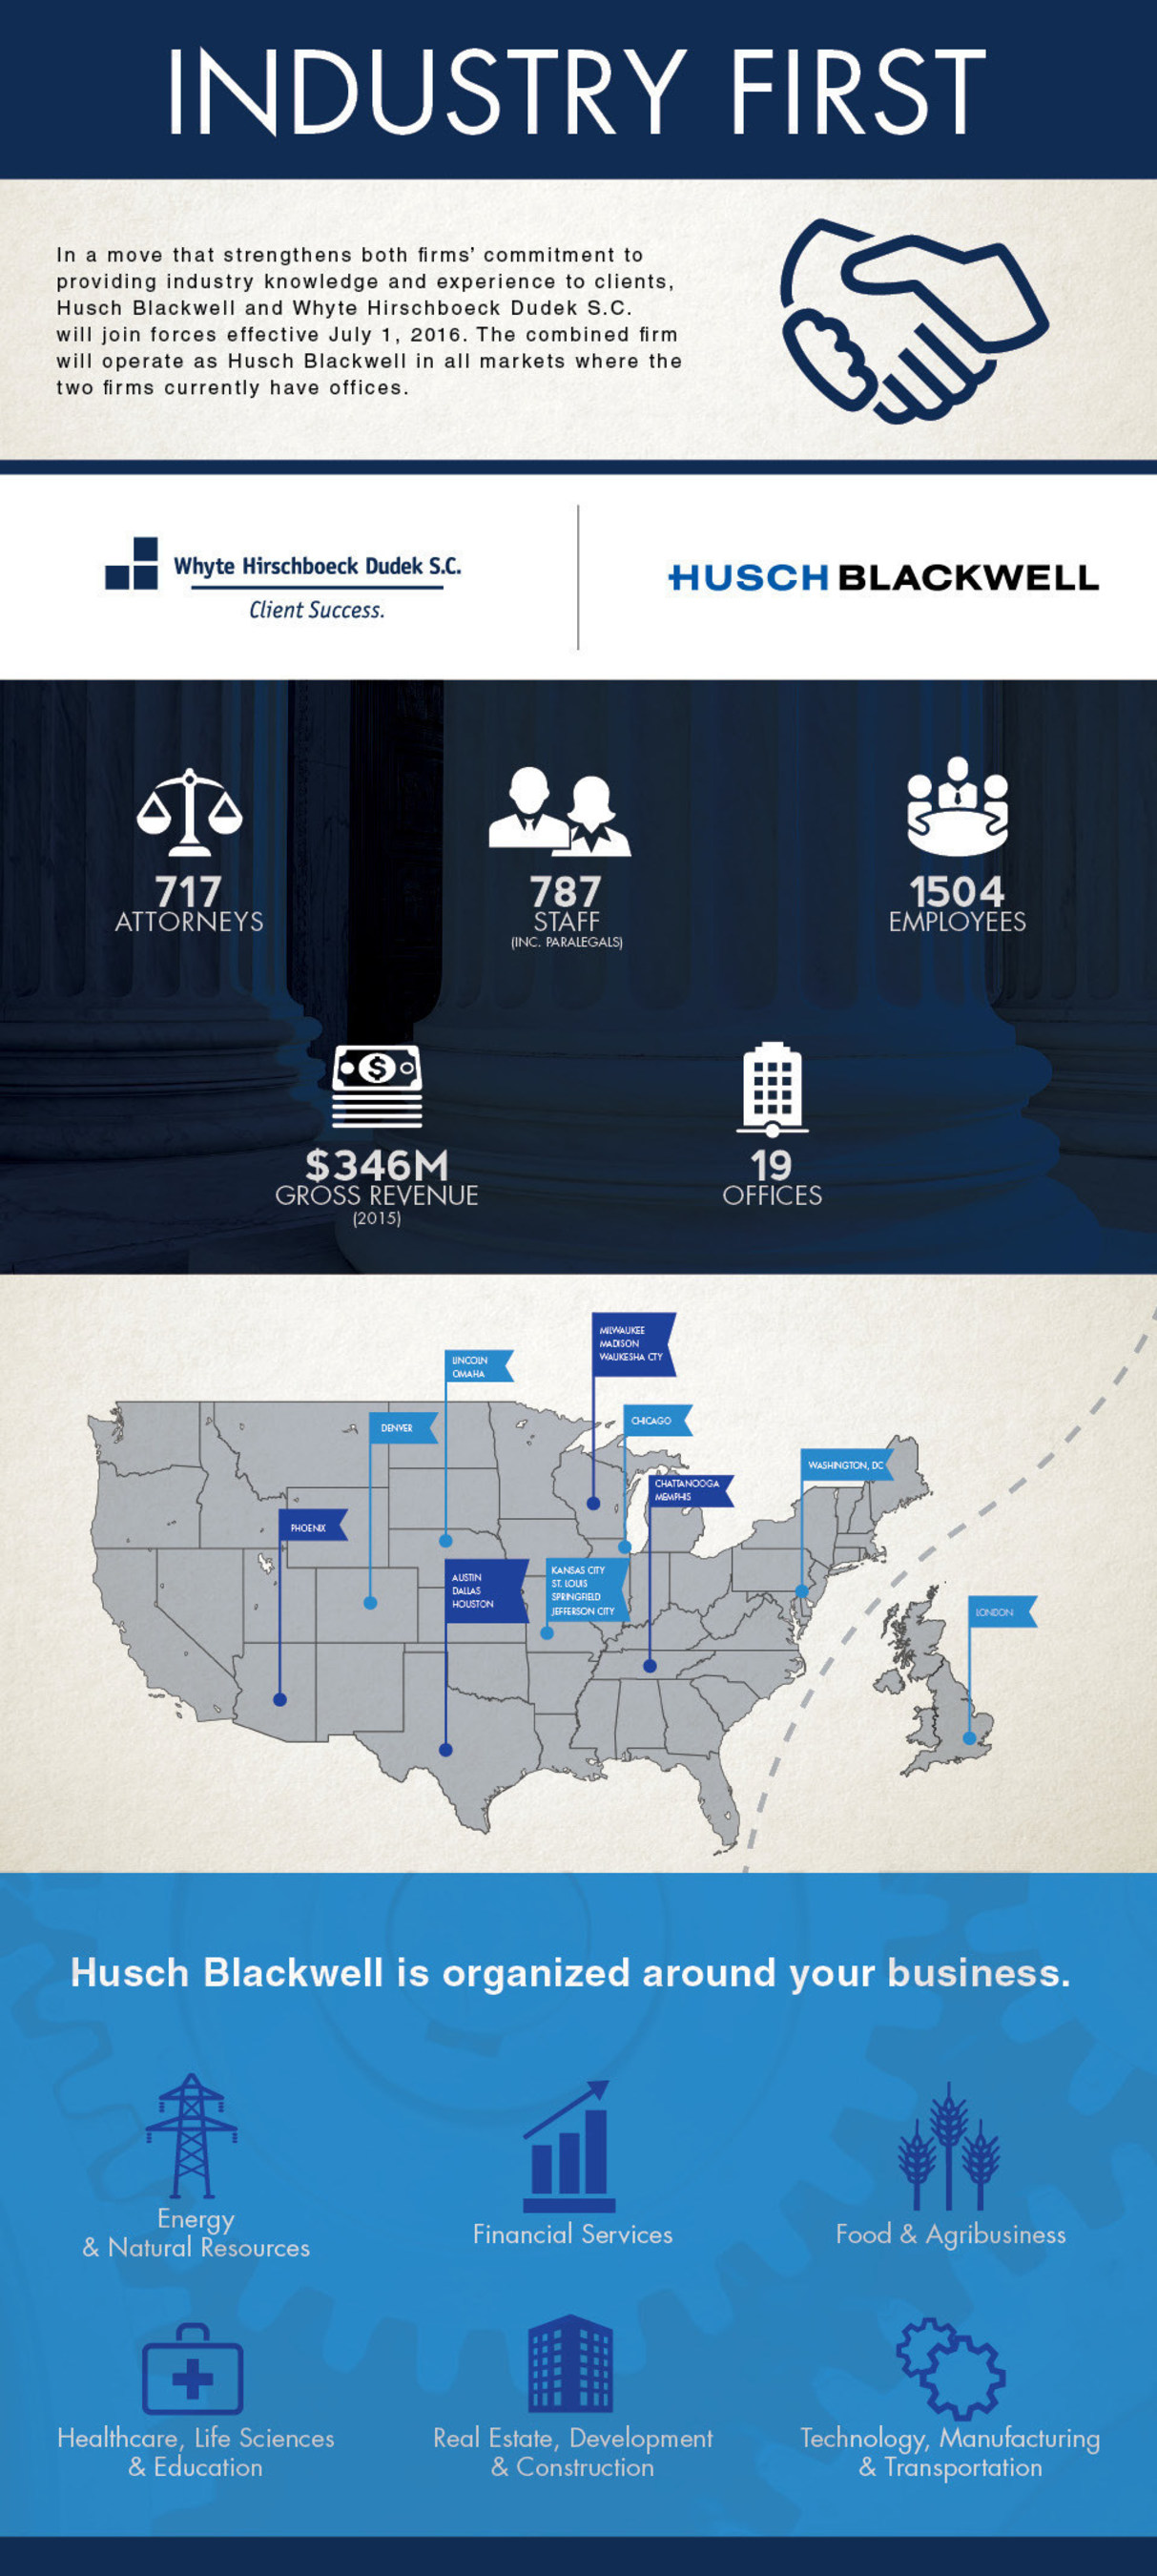 With the addition of WHD's offices, the combined Husch Blackwell firm will have more than 700 attorneys and offices in 19 cities, and combined annual revenues of approximately $346 million in 2015.